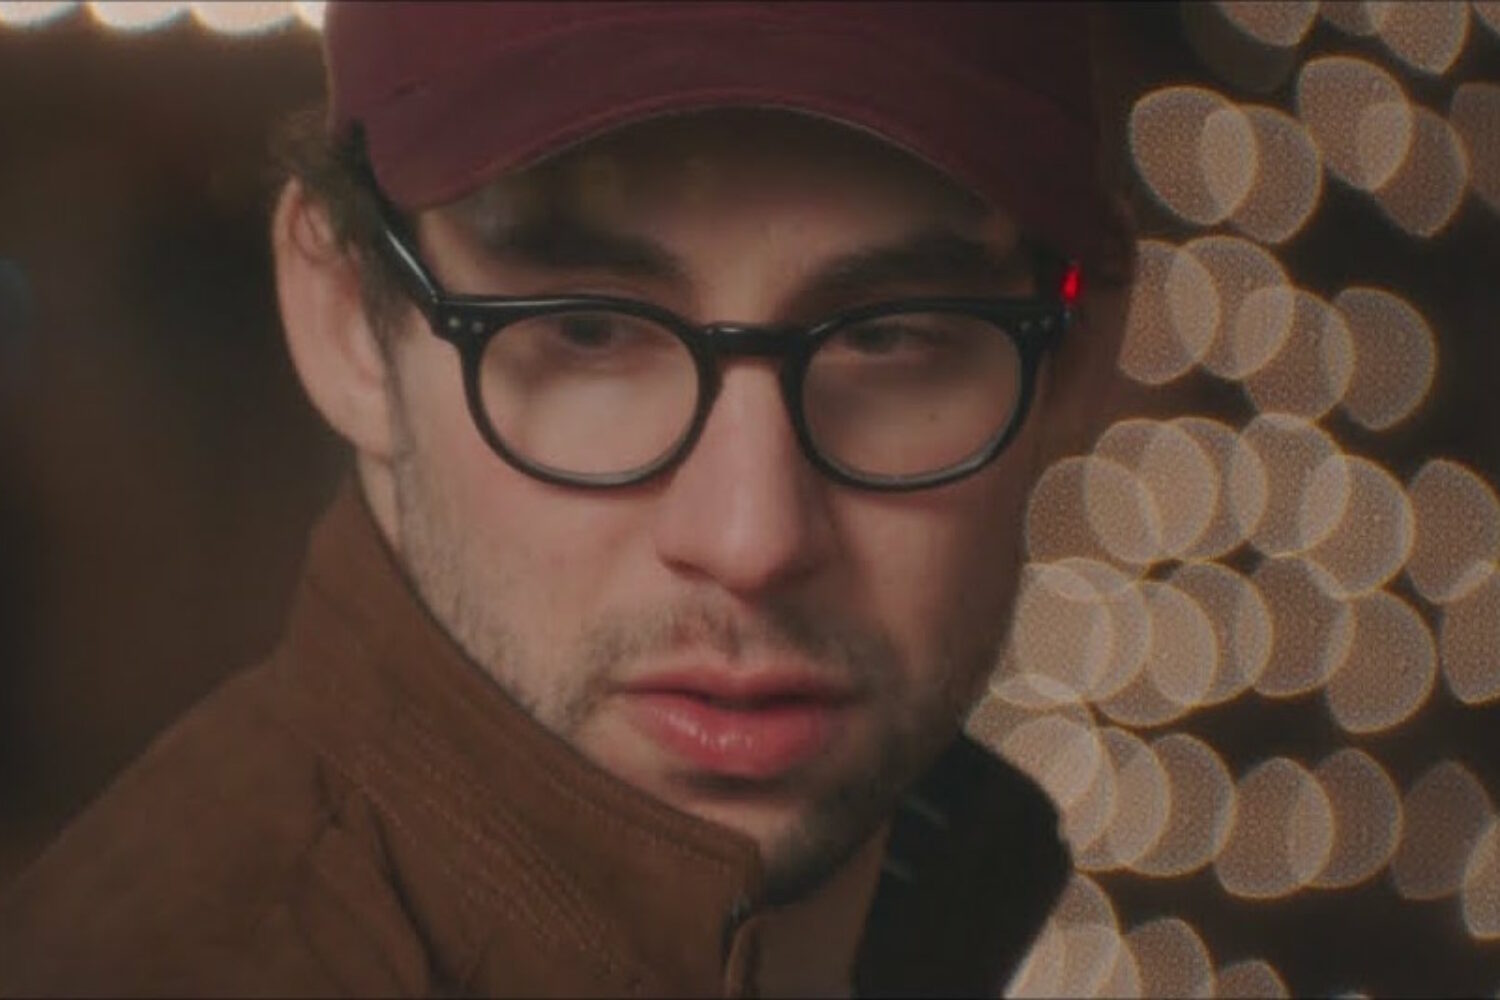 Bleachers stars in his own rom-com in the video for 'Alfie's Song (Not So Typical Love Song)'